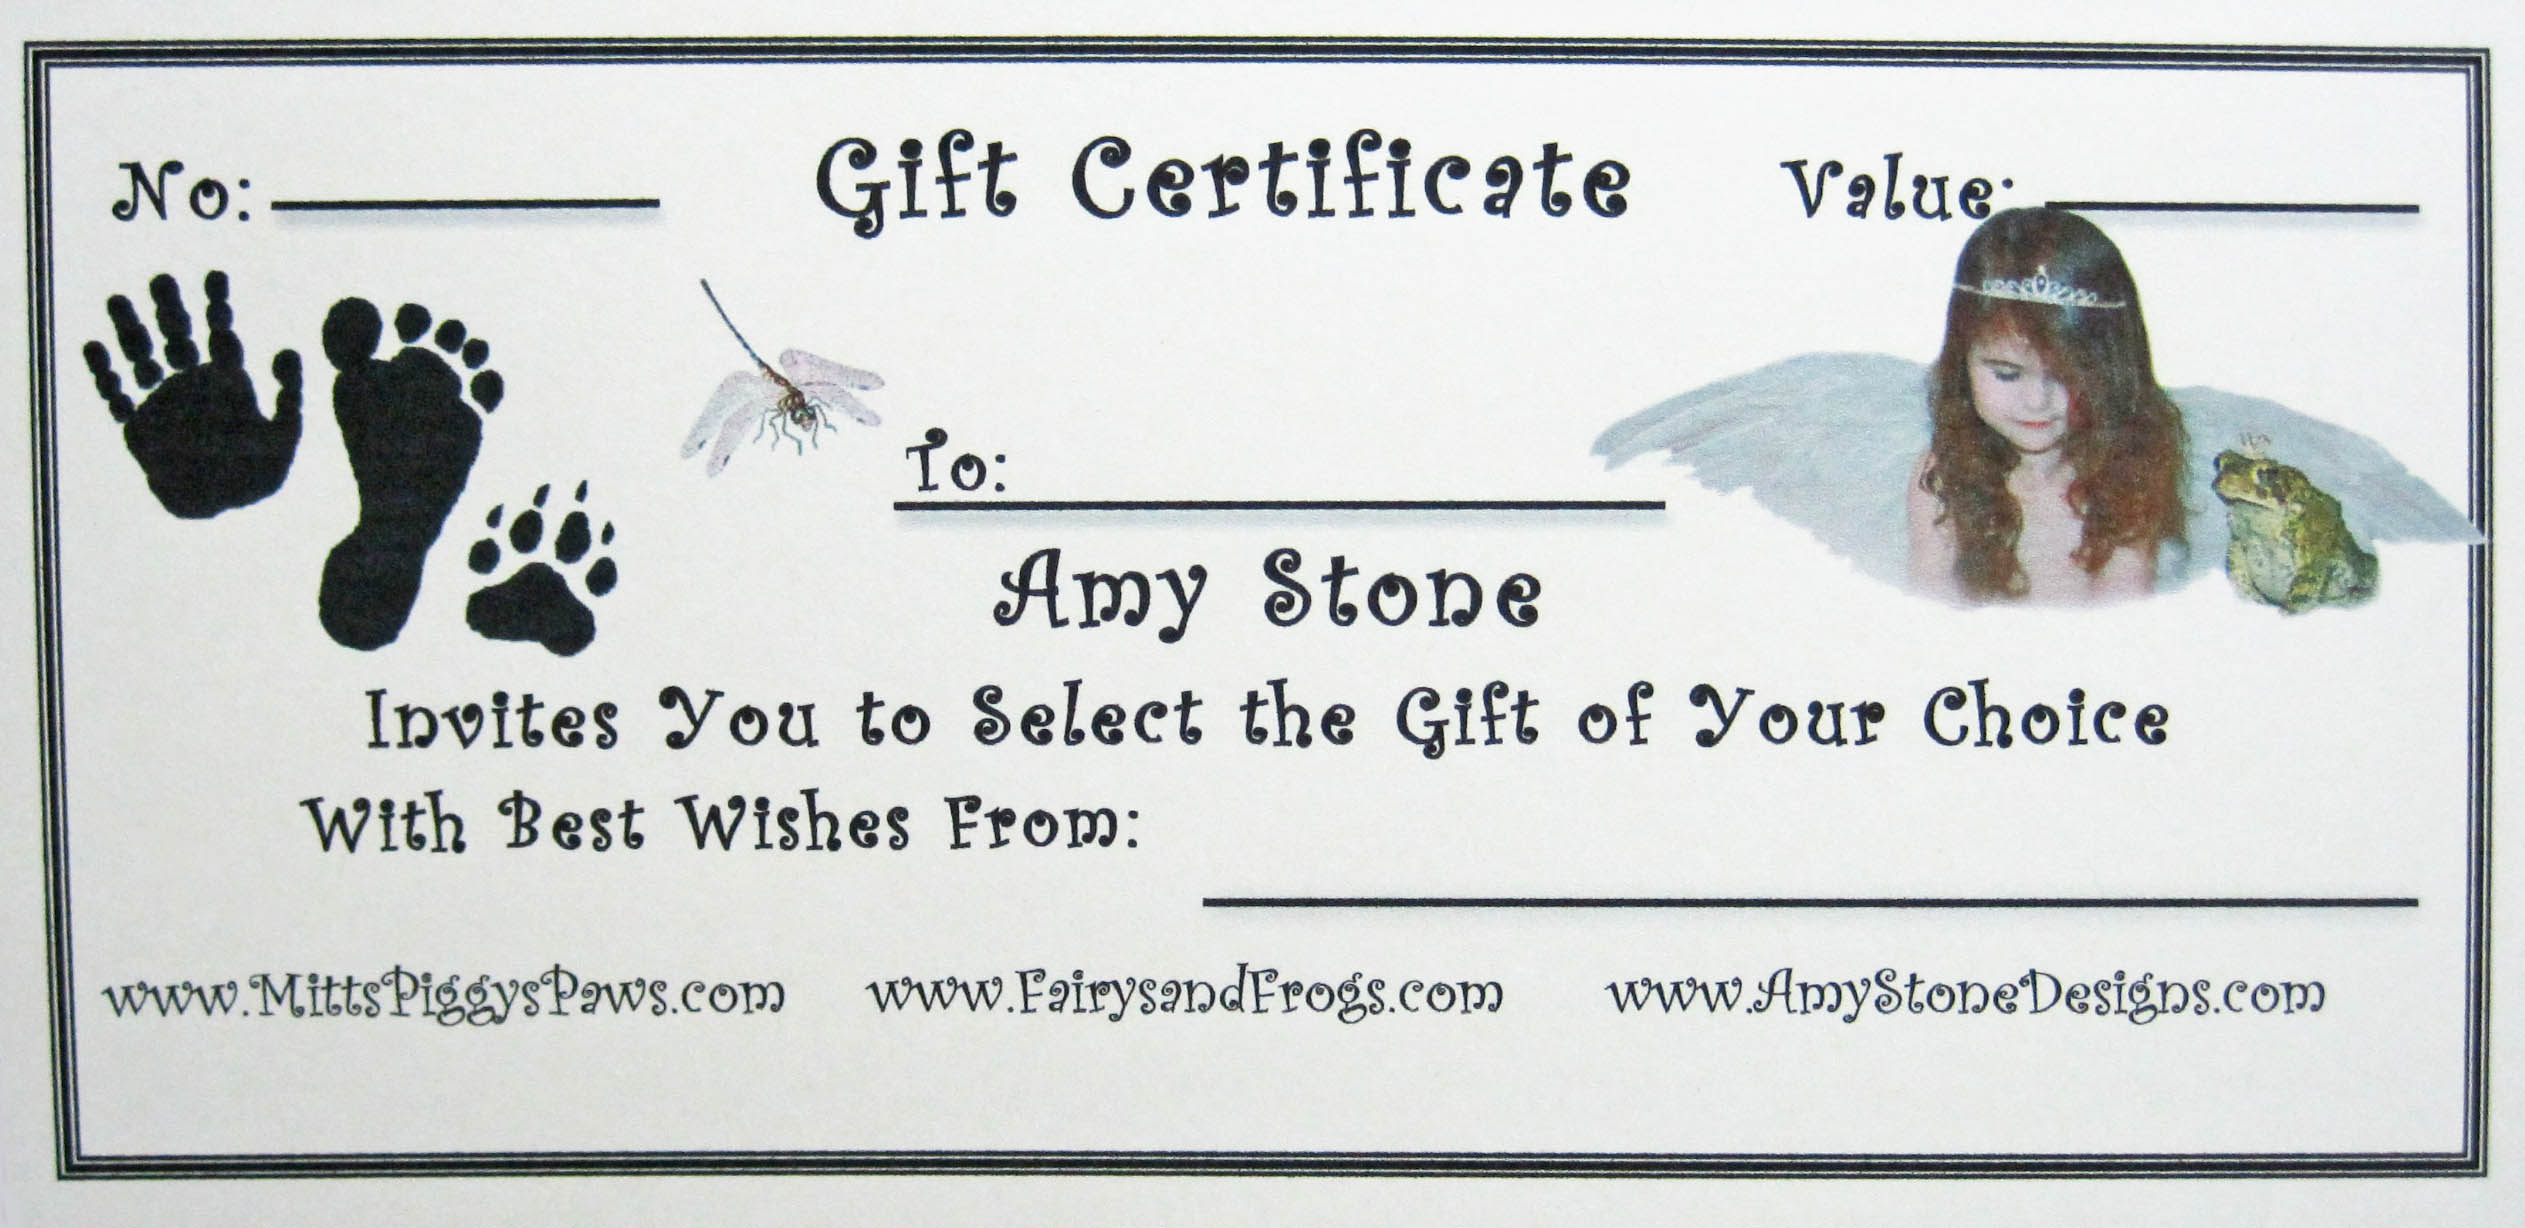 making a gift certificate info gift certificates make great gifts amy stone